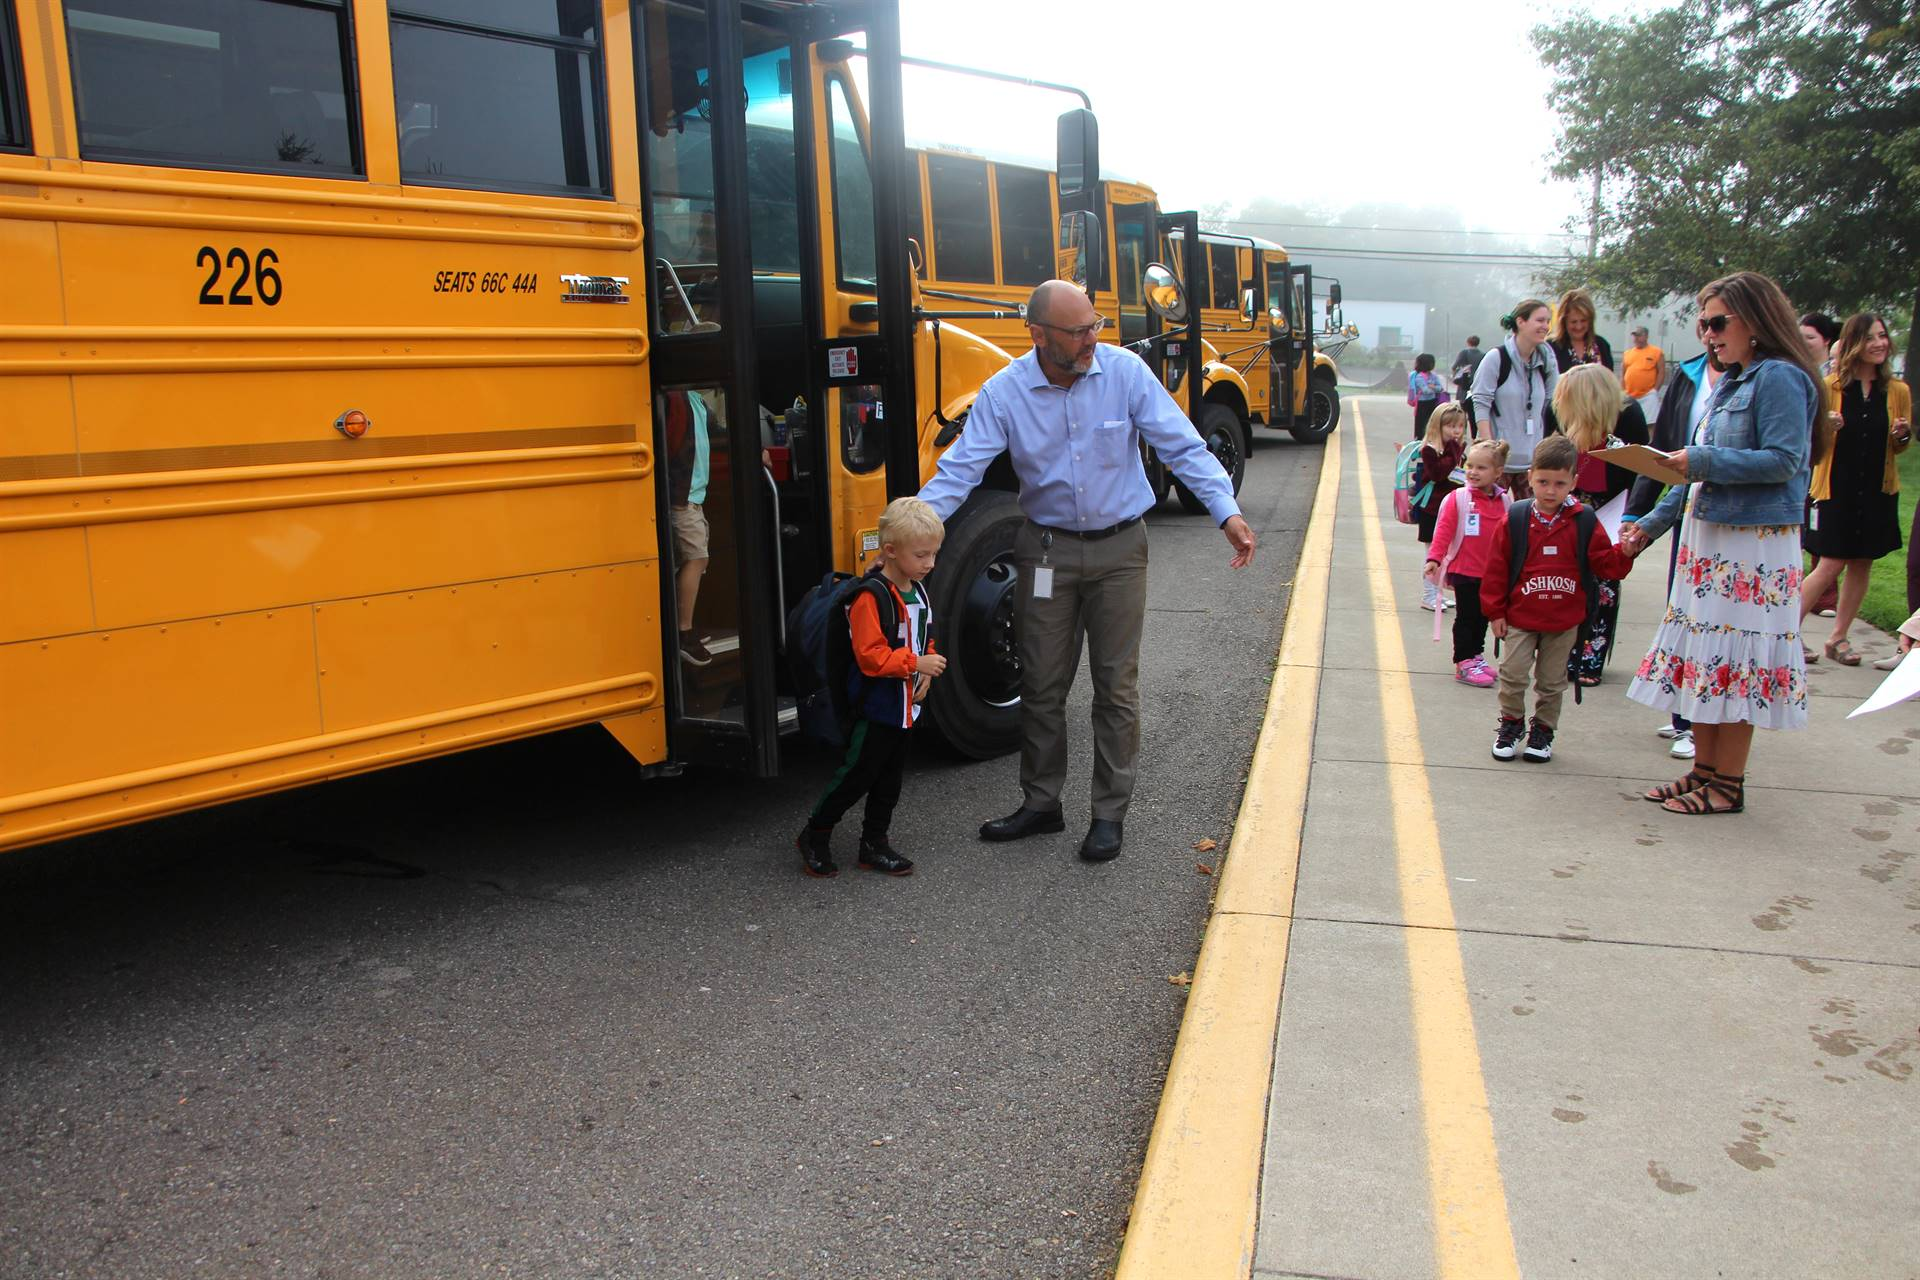 Principal helps boy off bus